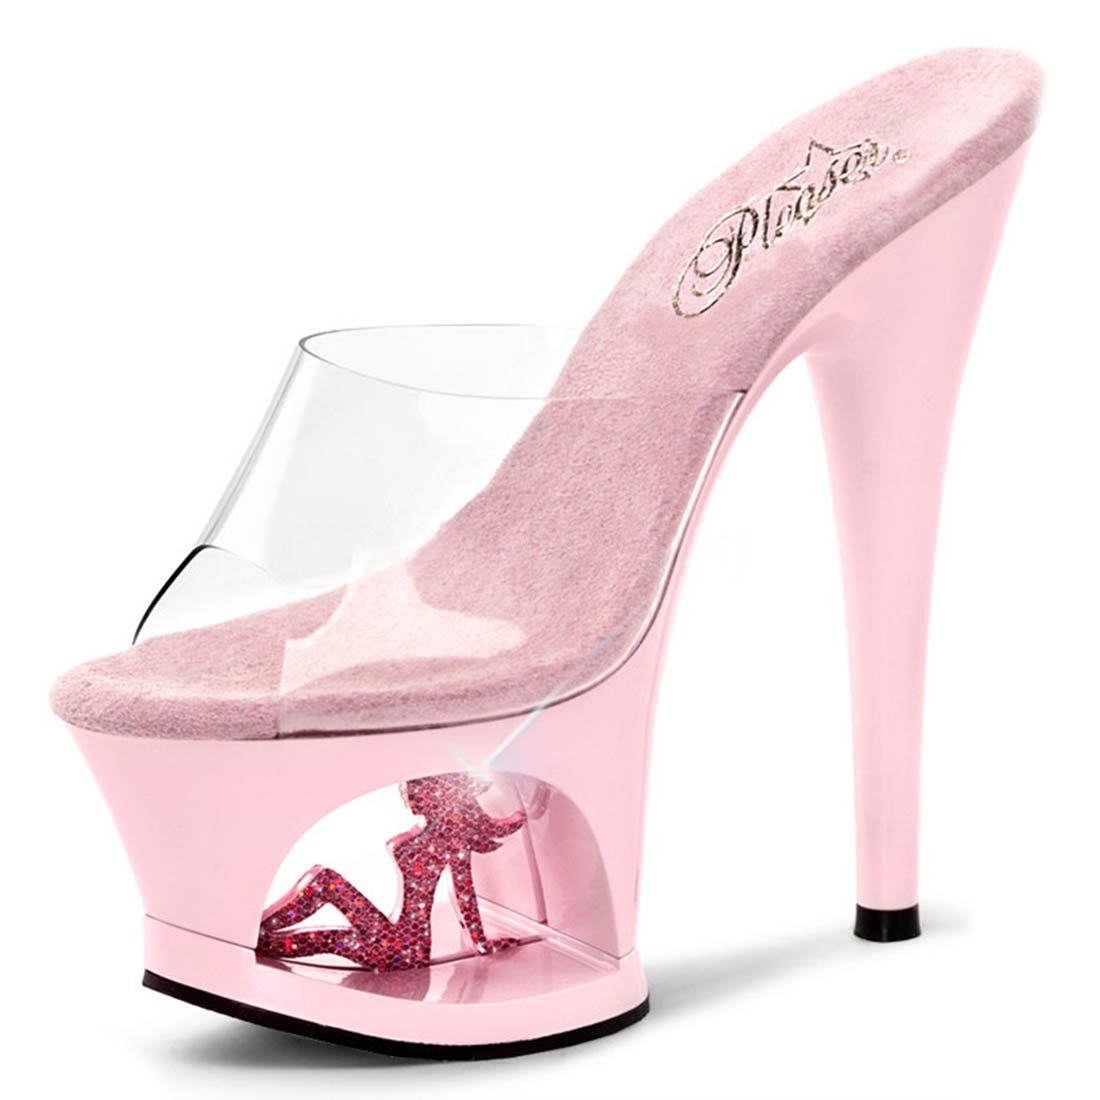 dc612442930 Pale Pink Heels with Sparkling Trucker Girl in Cutout Platform and 7 Inch  Heel